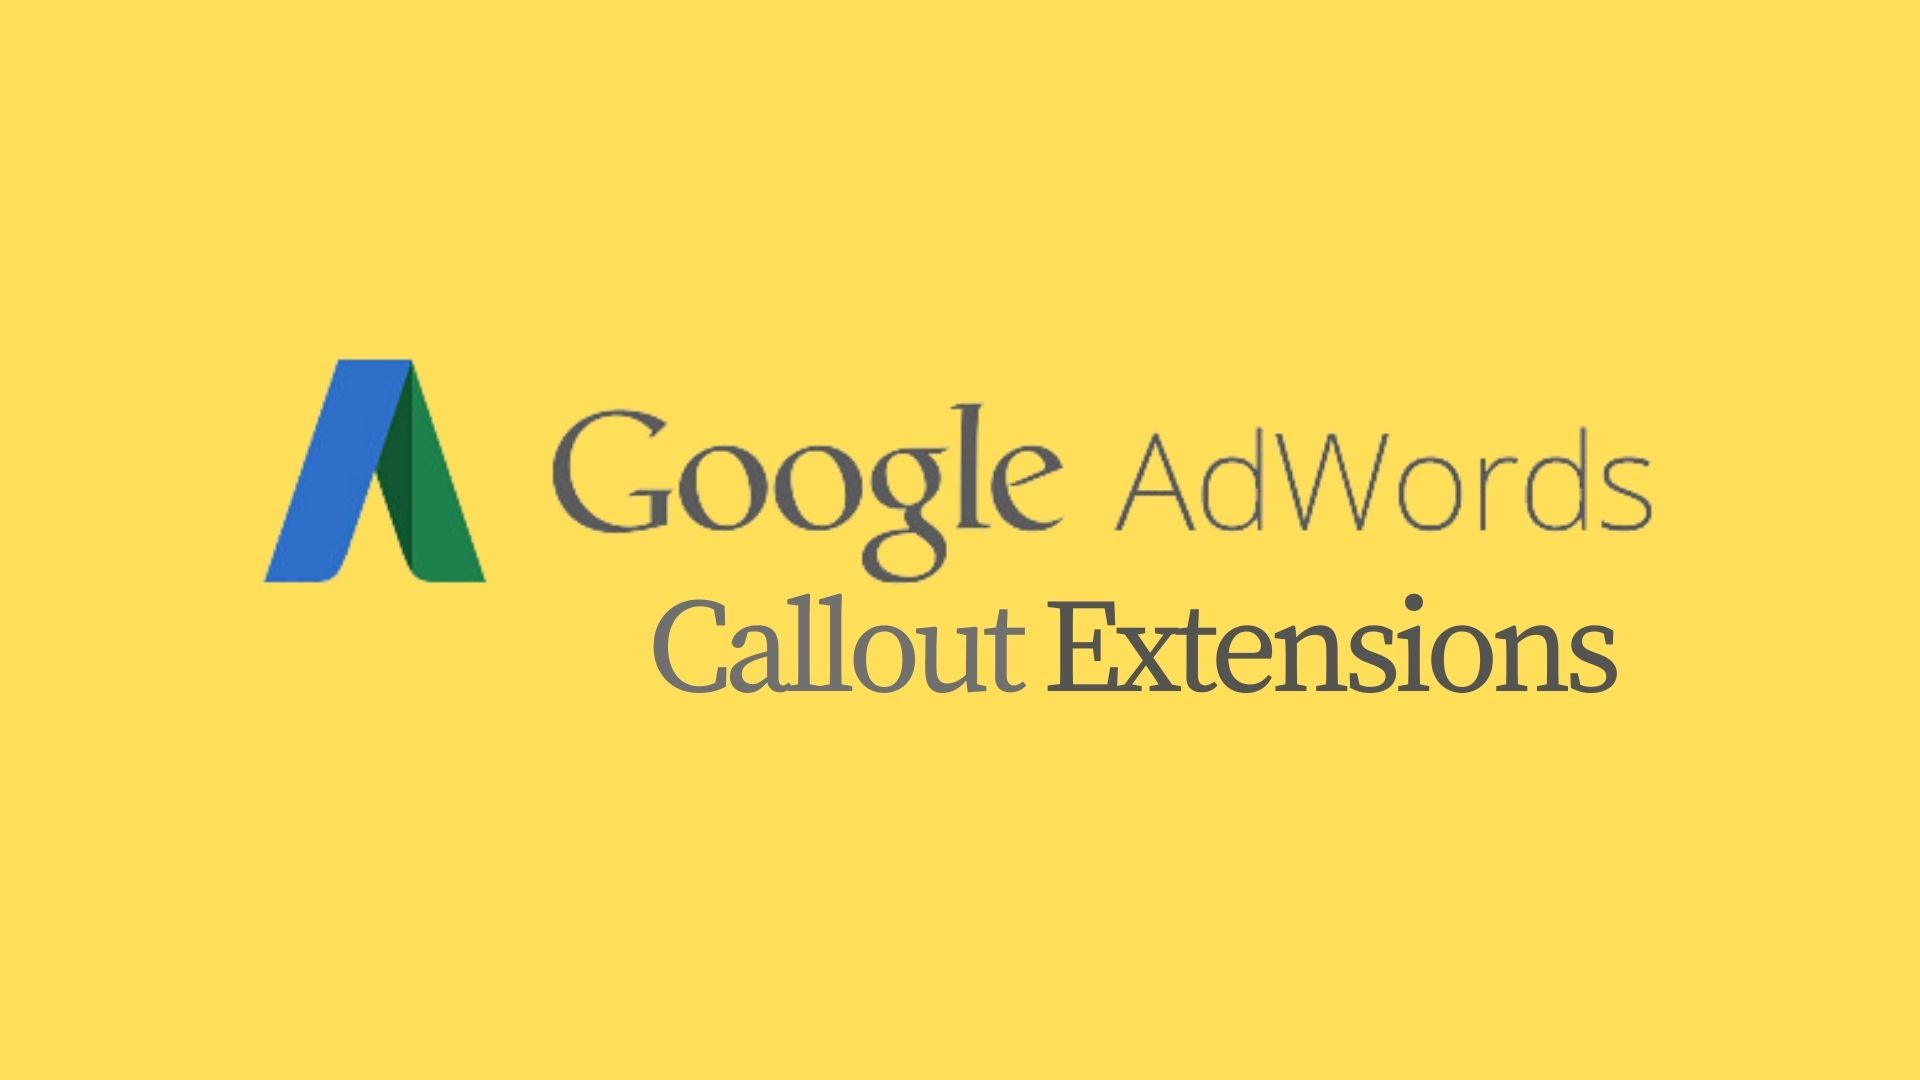 What Are Google Callout Extensions?